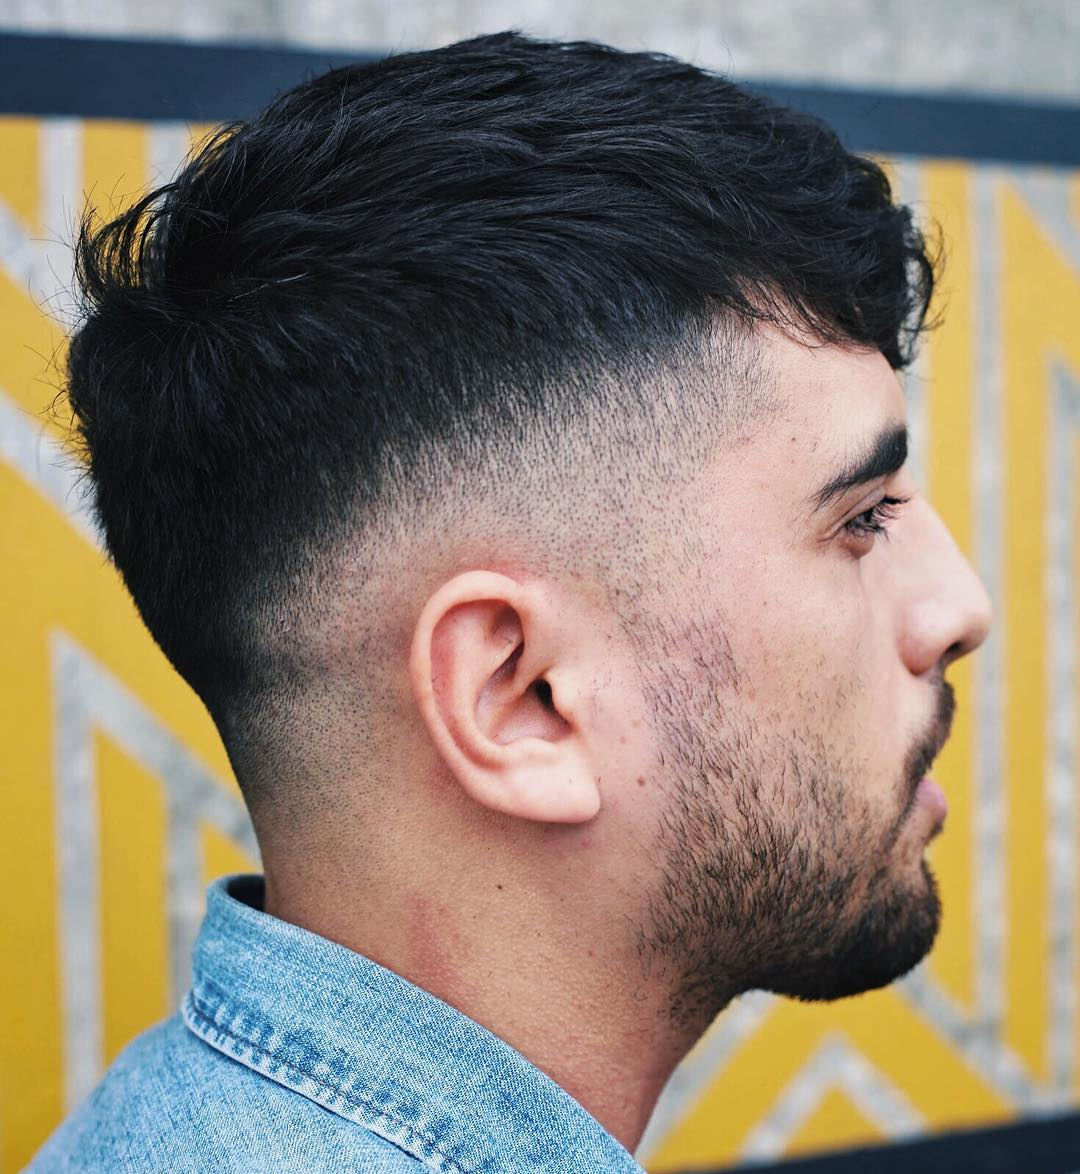 Heavy thick hair crop fade haircut for men